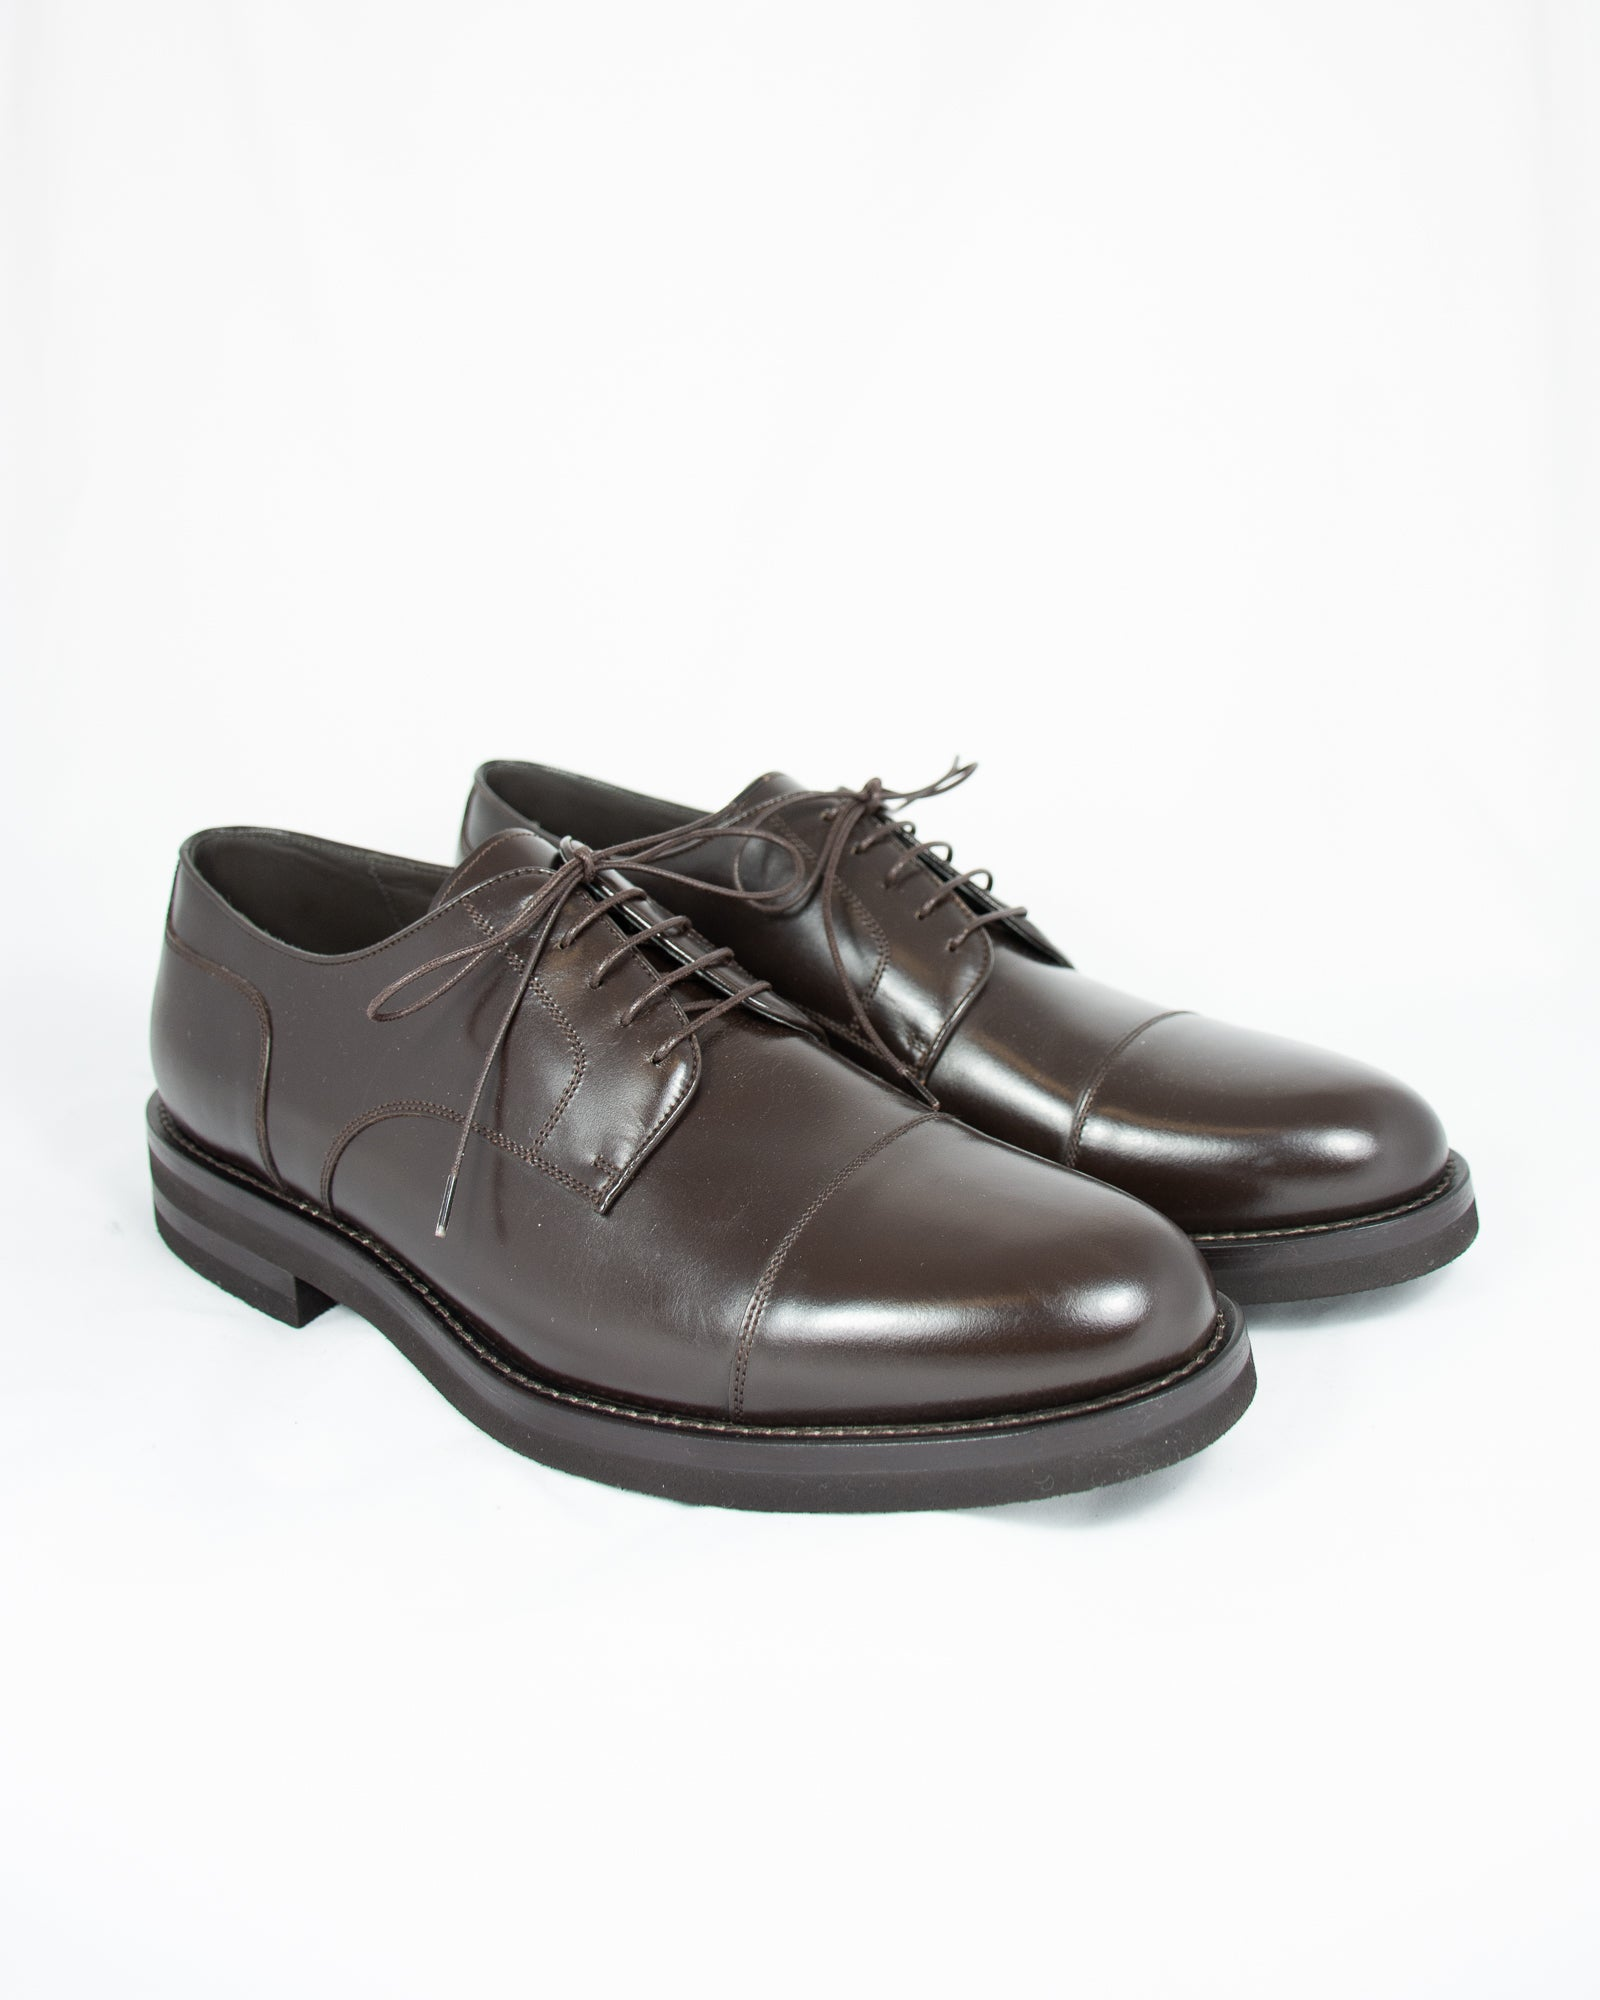 BRUNELLO CUCINELLI Lace Up Derby